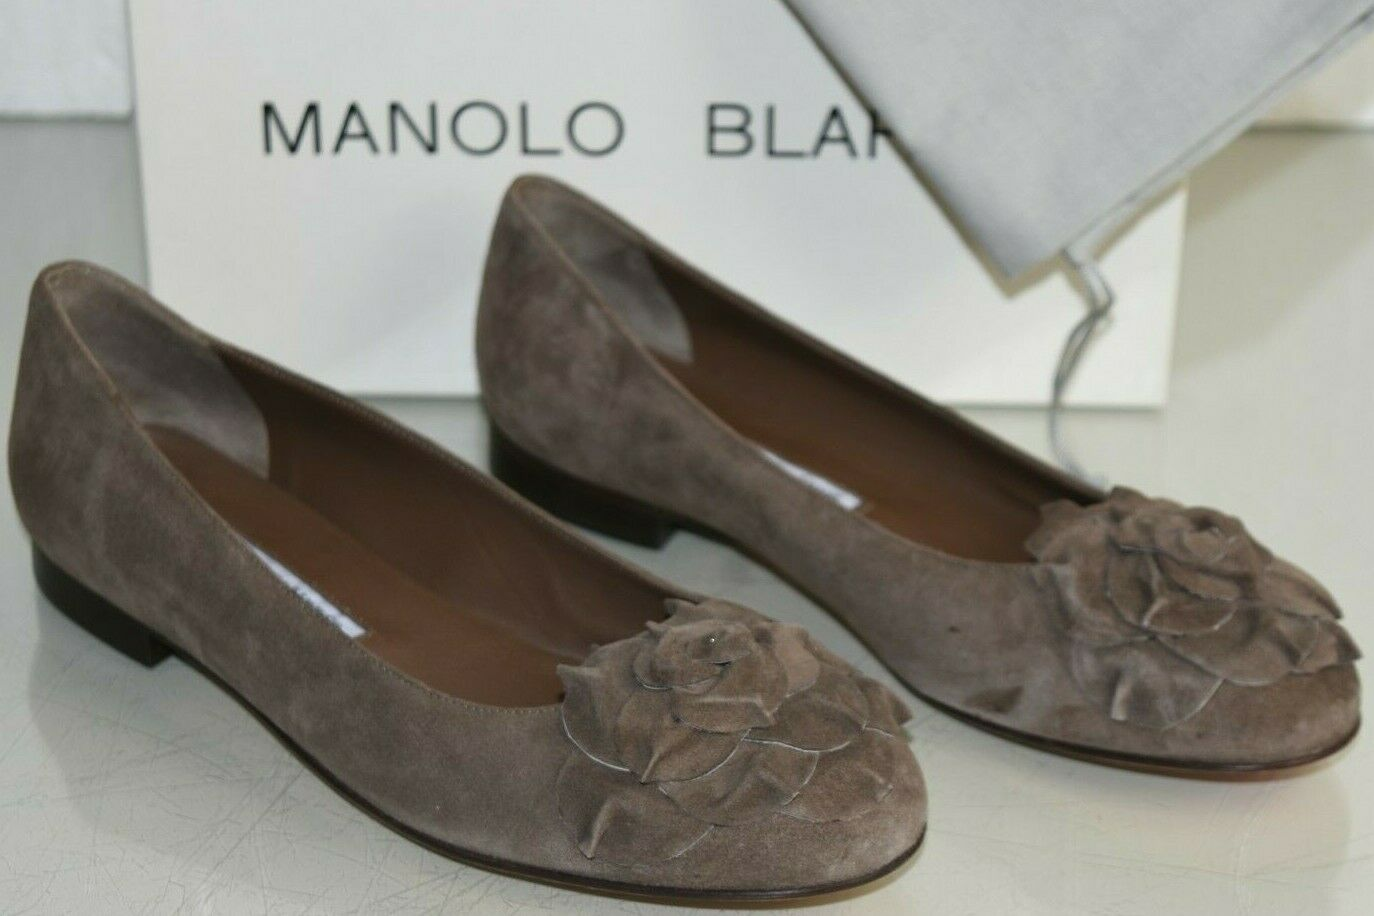 NEW Manolo Blahnik GISELLA Flats Suede Taupe Grey Brown Flower Flat Shoes 40.5